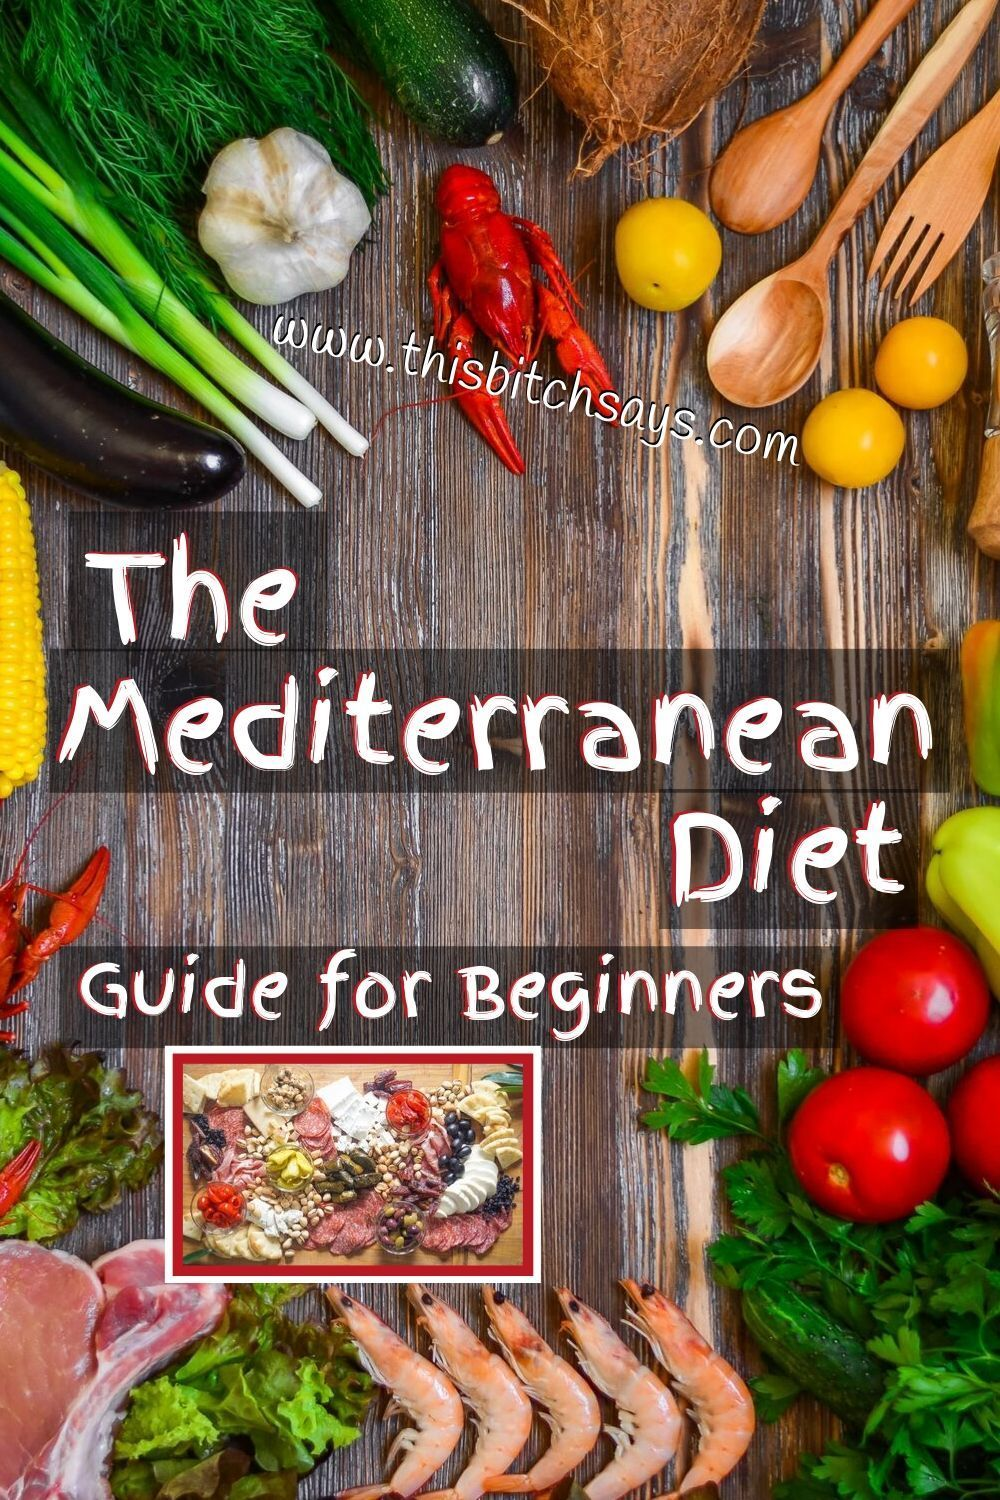 Photo of The Mediterranean Diet: Benefits & Guide for Beginners – This Bitch Says